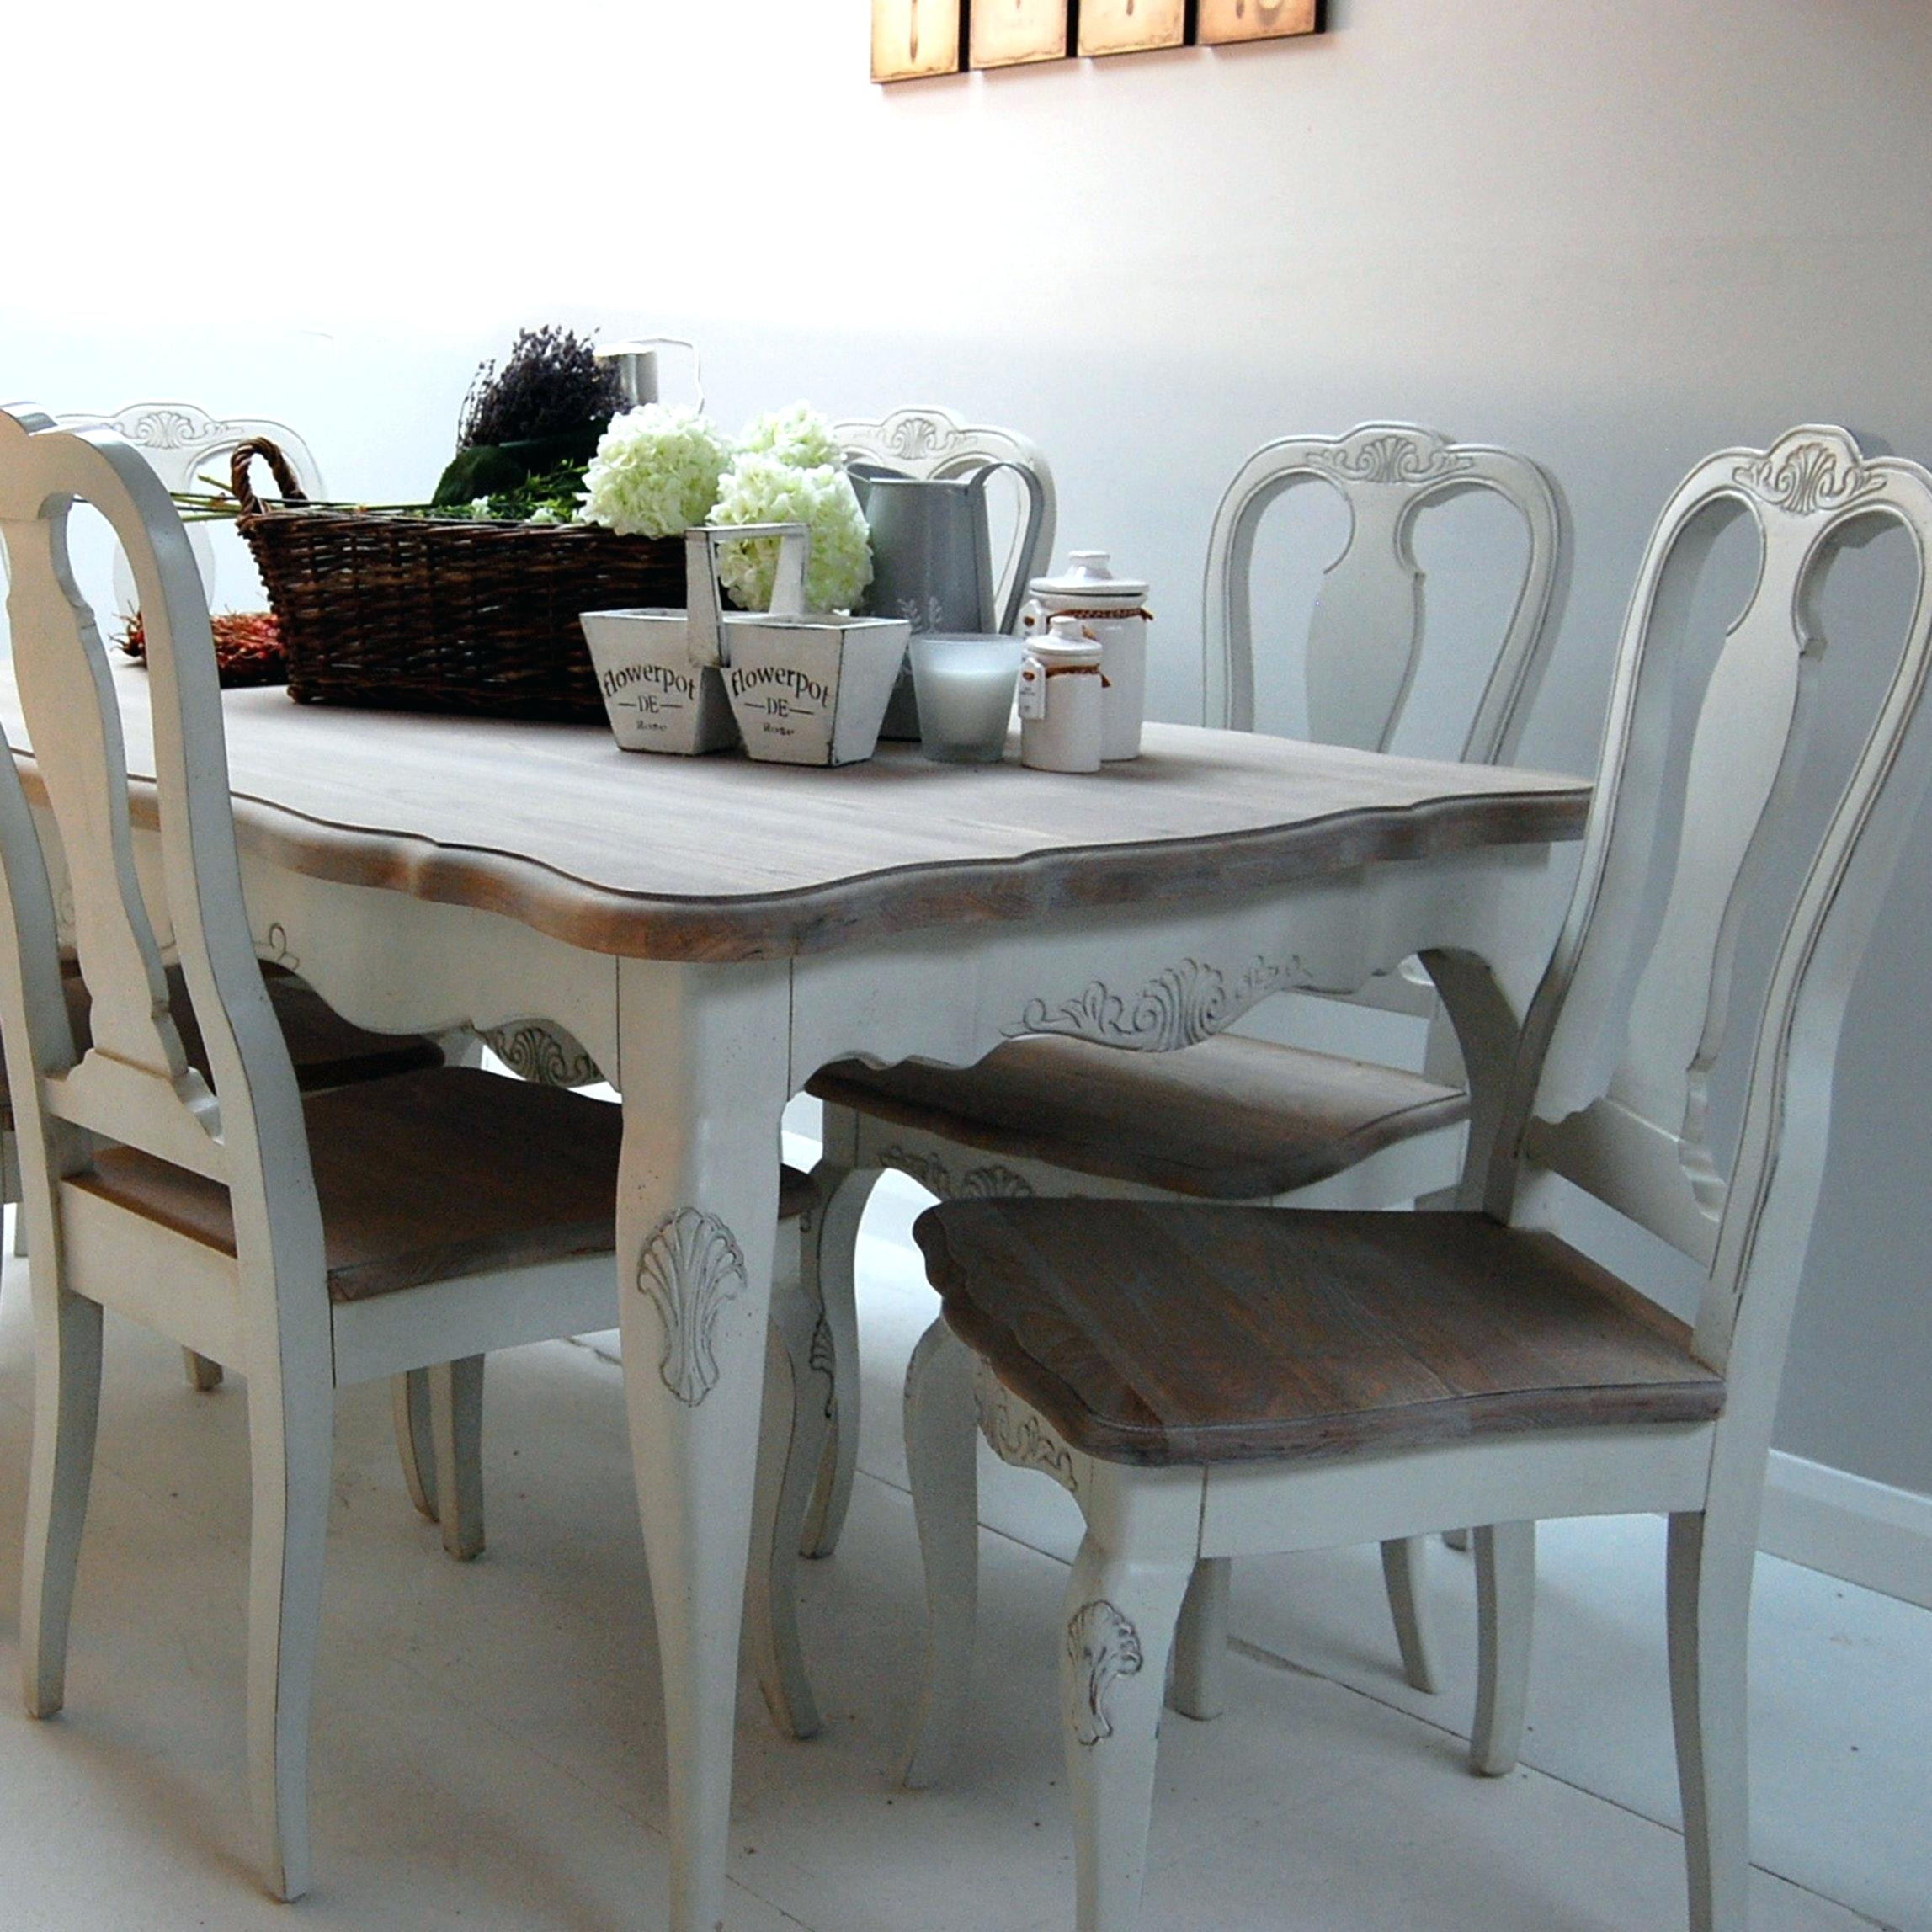 Best ideas about Patio Dining Table Clearance . Save or Pin Dining Table Clearance Patio Furniture Sale And Chairs Uk Now.